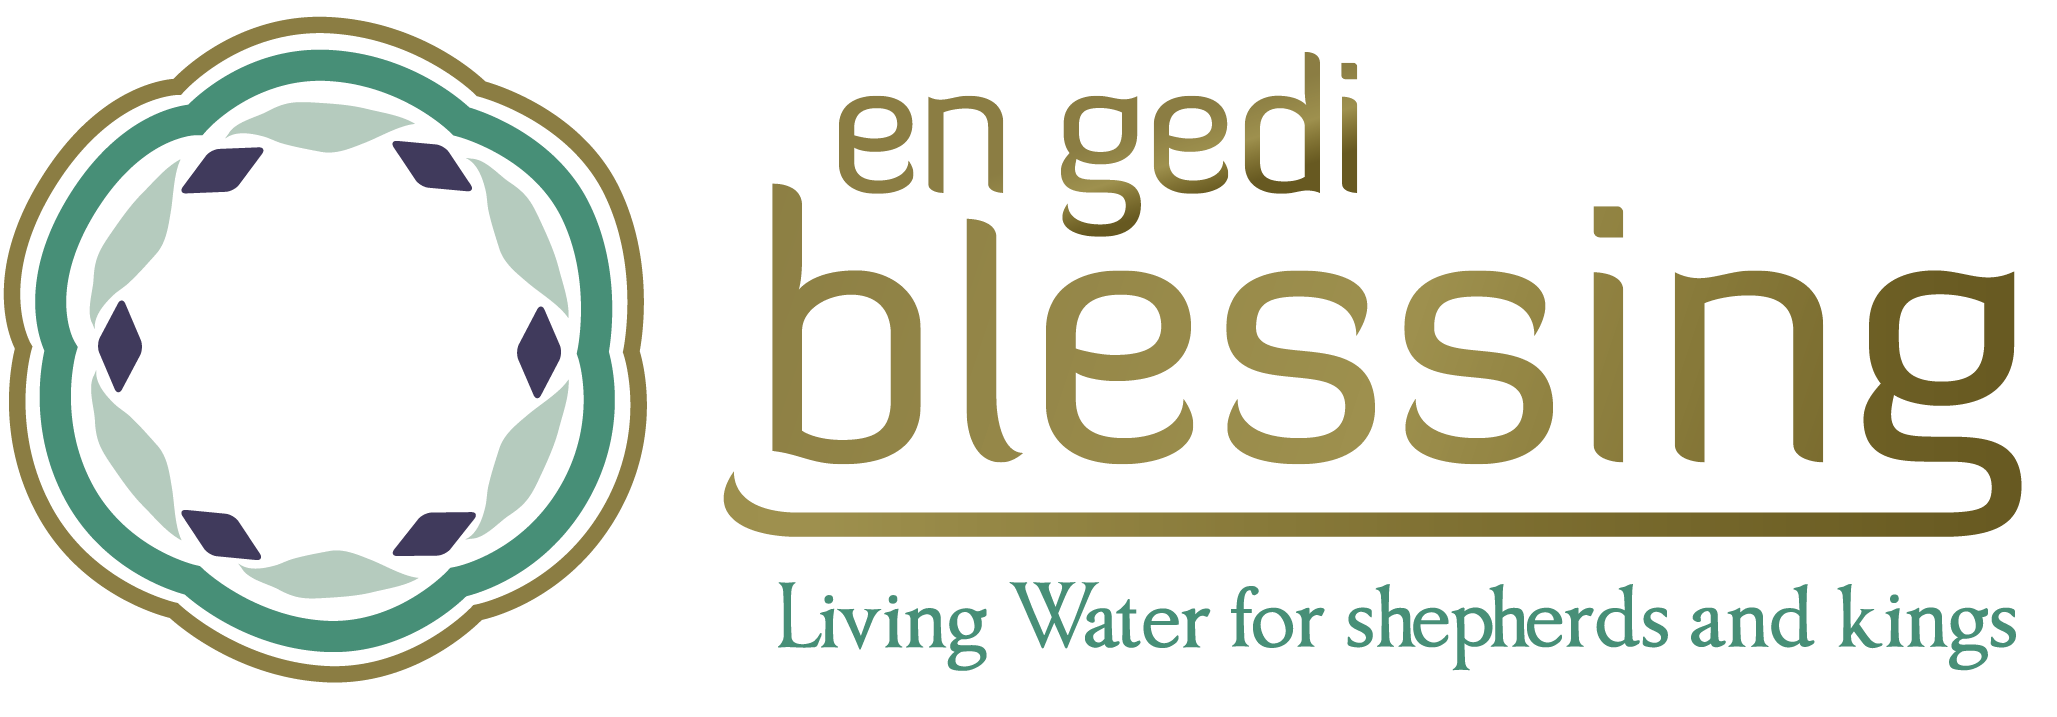 En Gedi Blessing | En Gedi Blessing   Home Contact